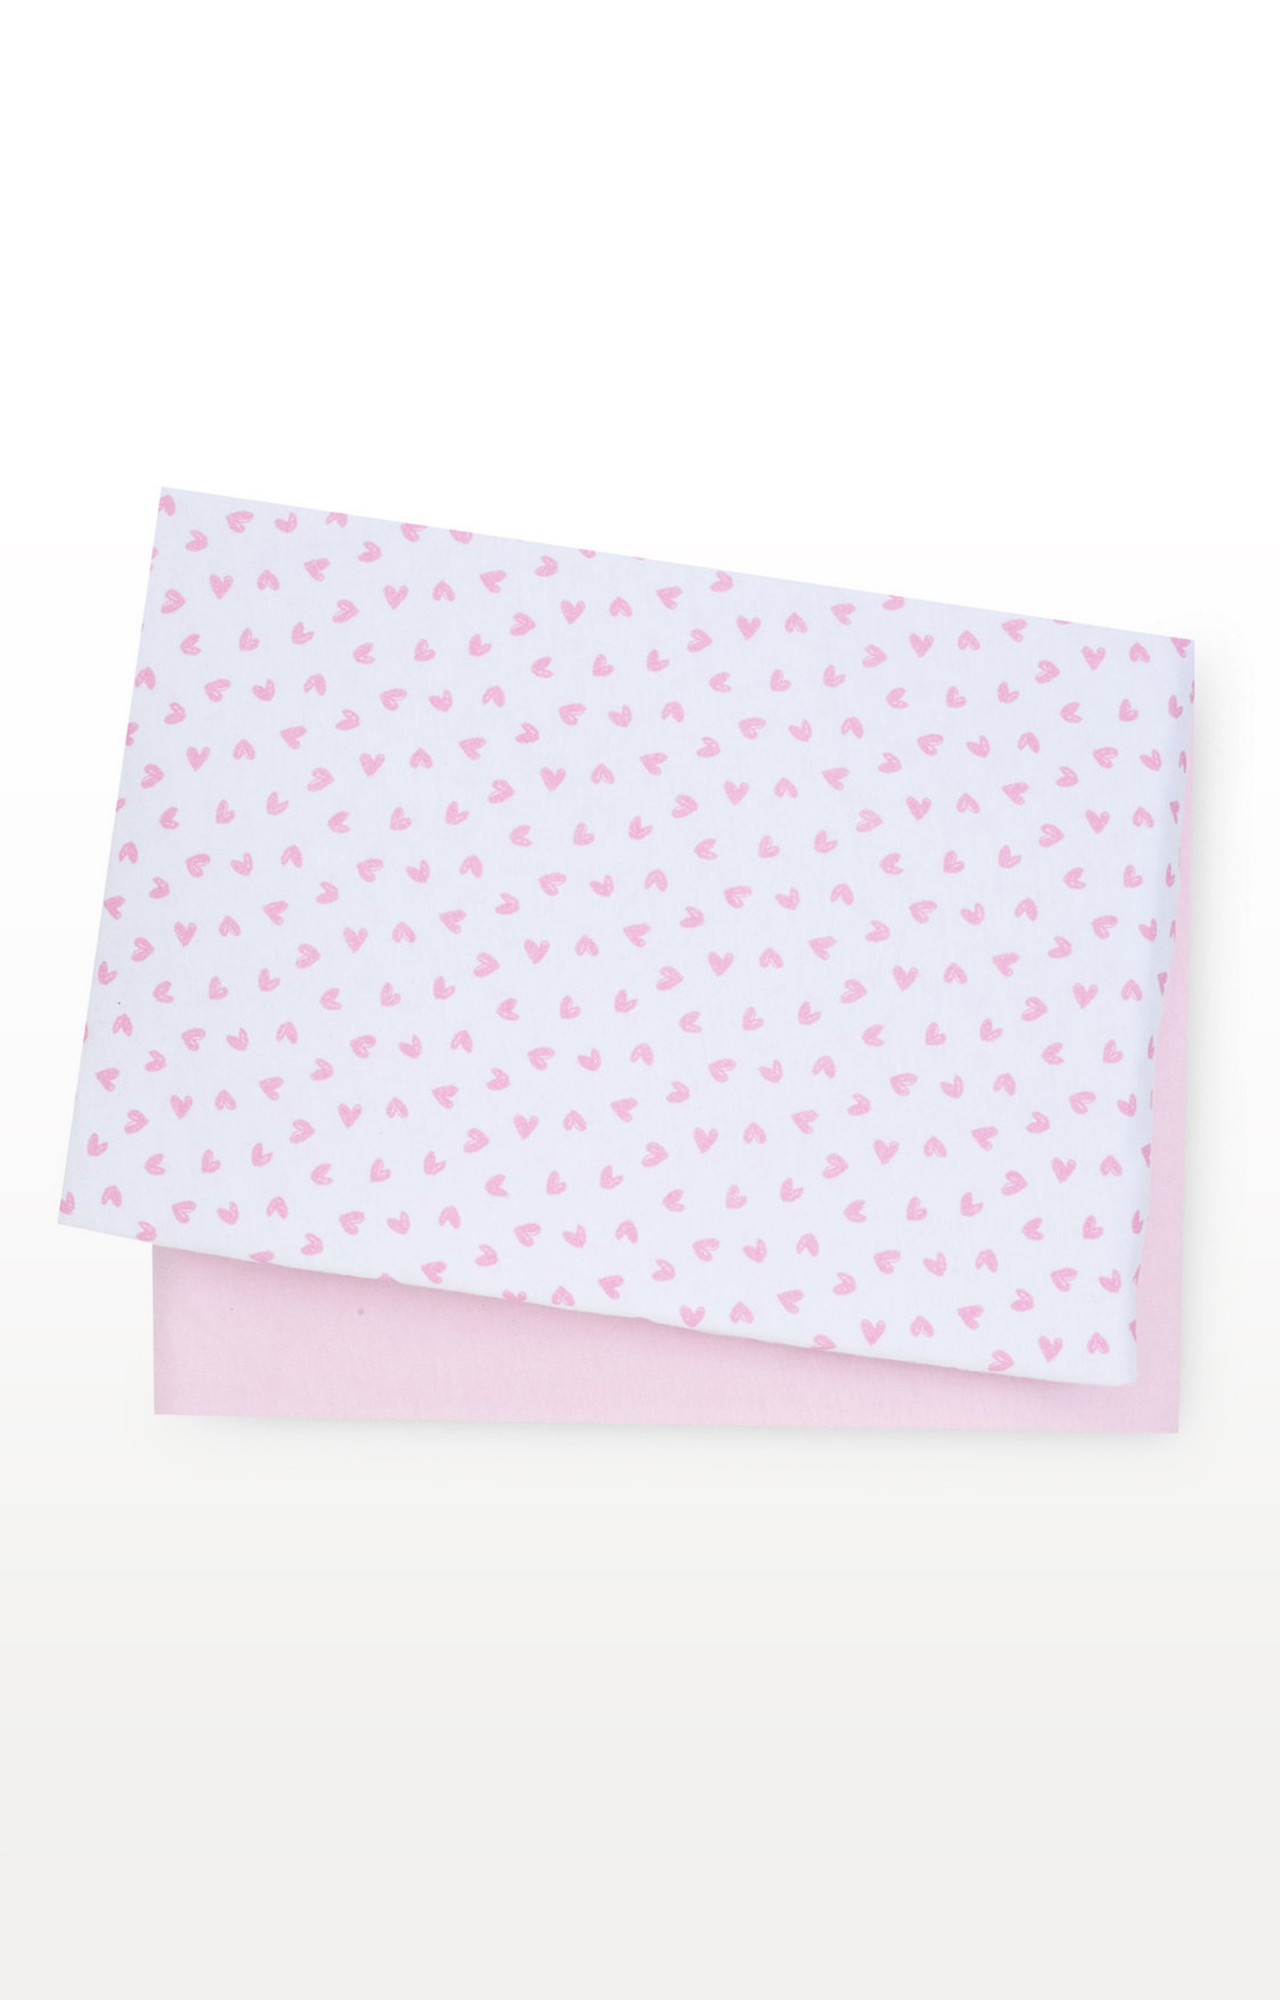 Mothercare | Pink Essential Cotton Bedside Crib Fitted Sheets - Pack of 2